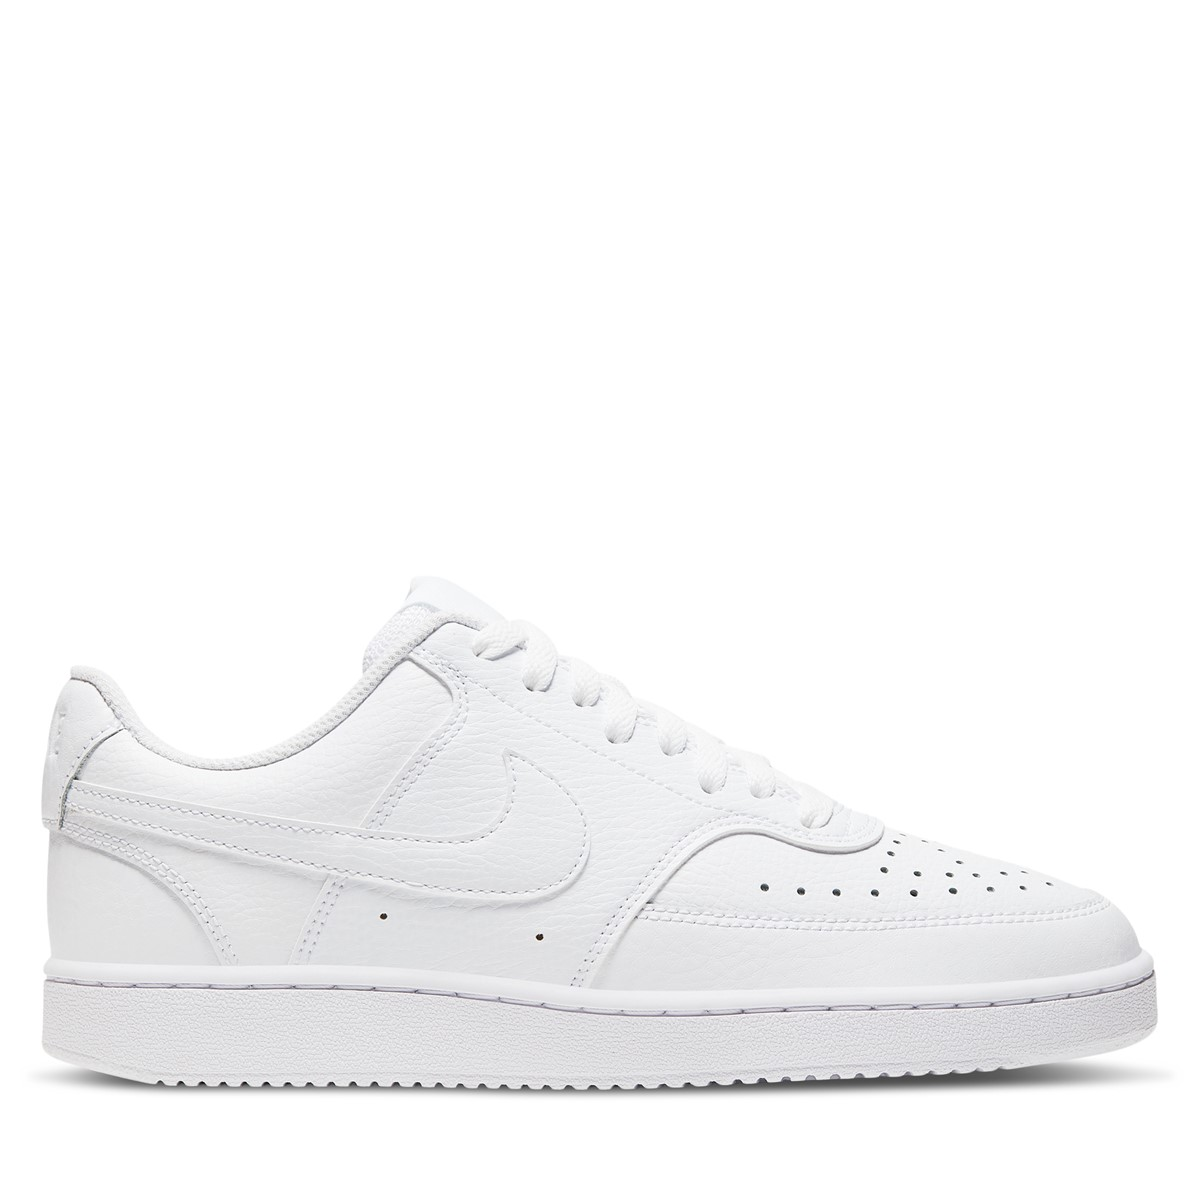 Women's Court Vision Low Sneakers in White